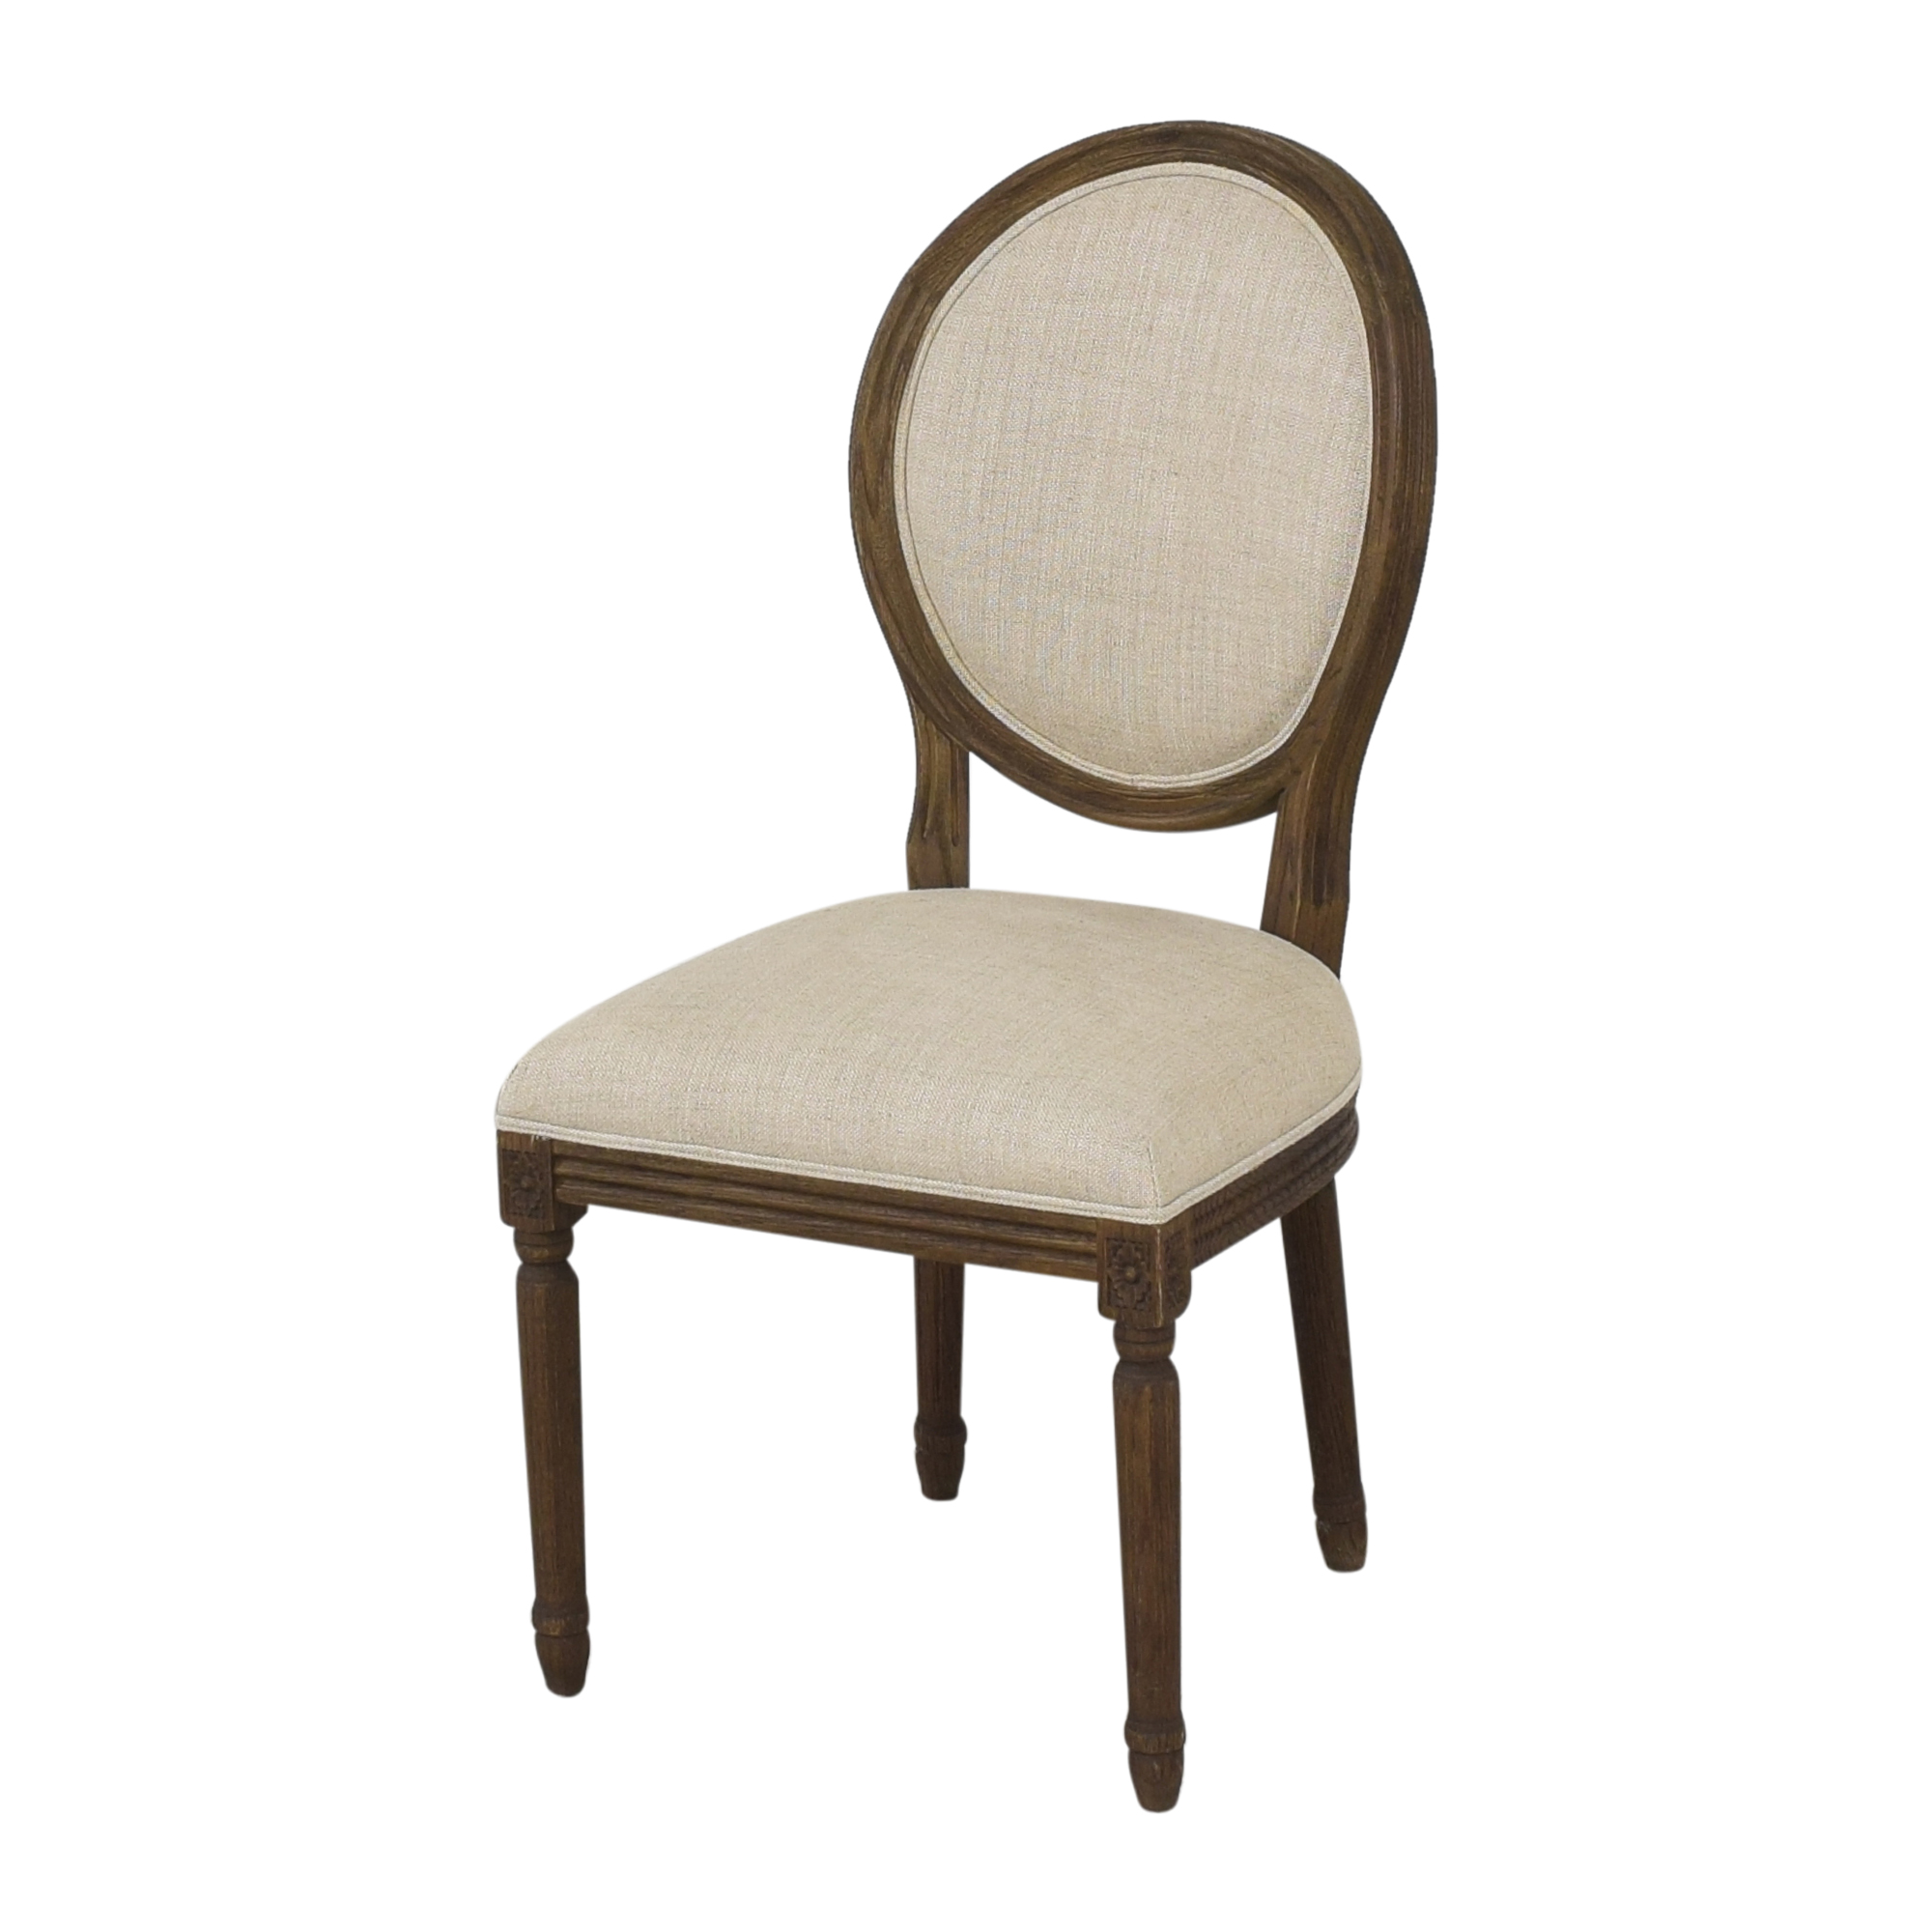 buy Restoration Hardware Restoration Hardware Vintage French Round Dining Side Chairs online